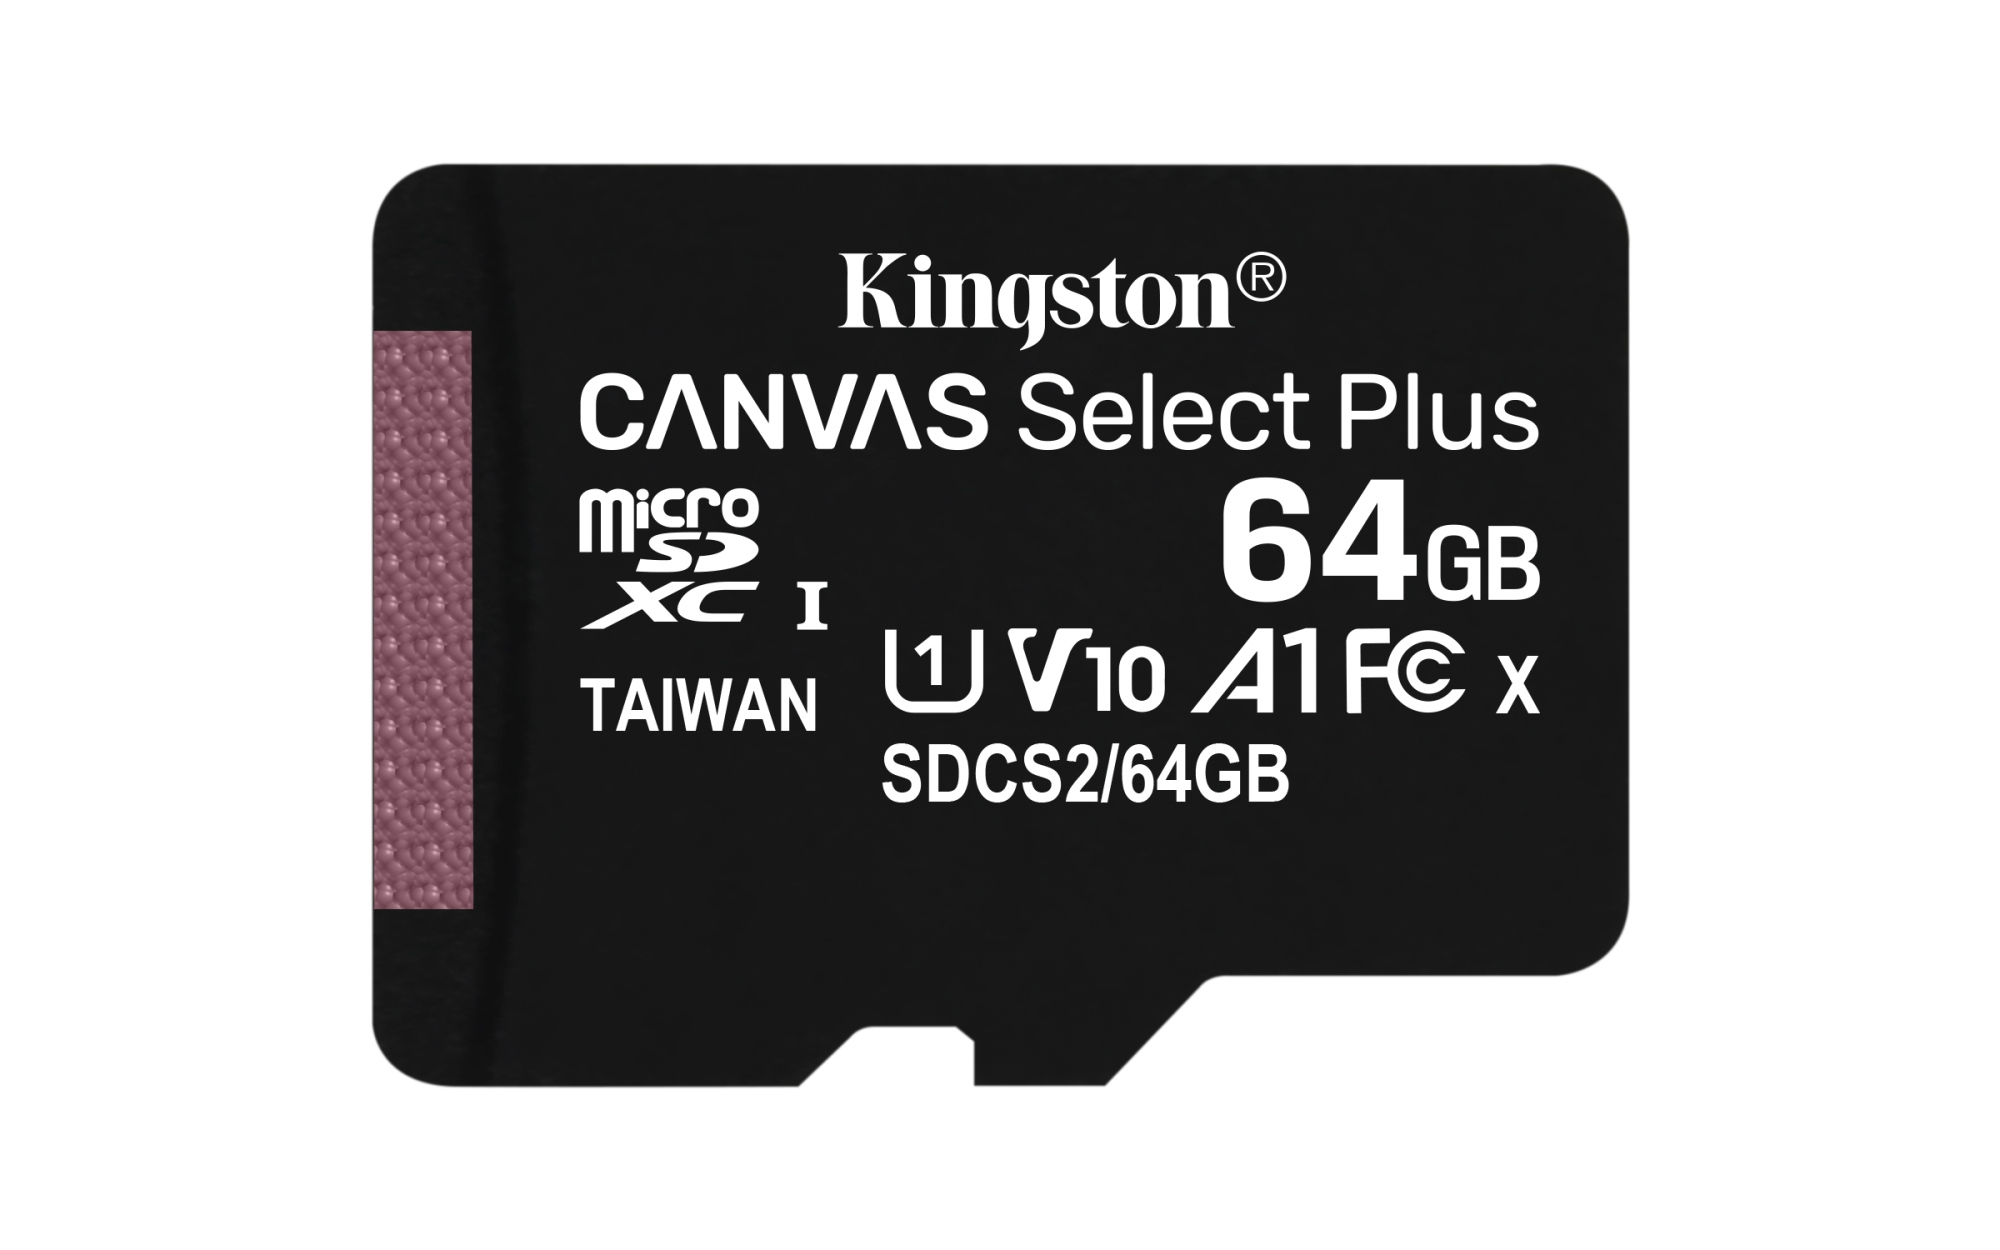 CANVAS SELECT PLUS MEMORIA FLASH 64 GB MICROSDXC CLASE 10 UHS-I